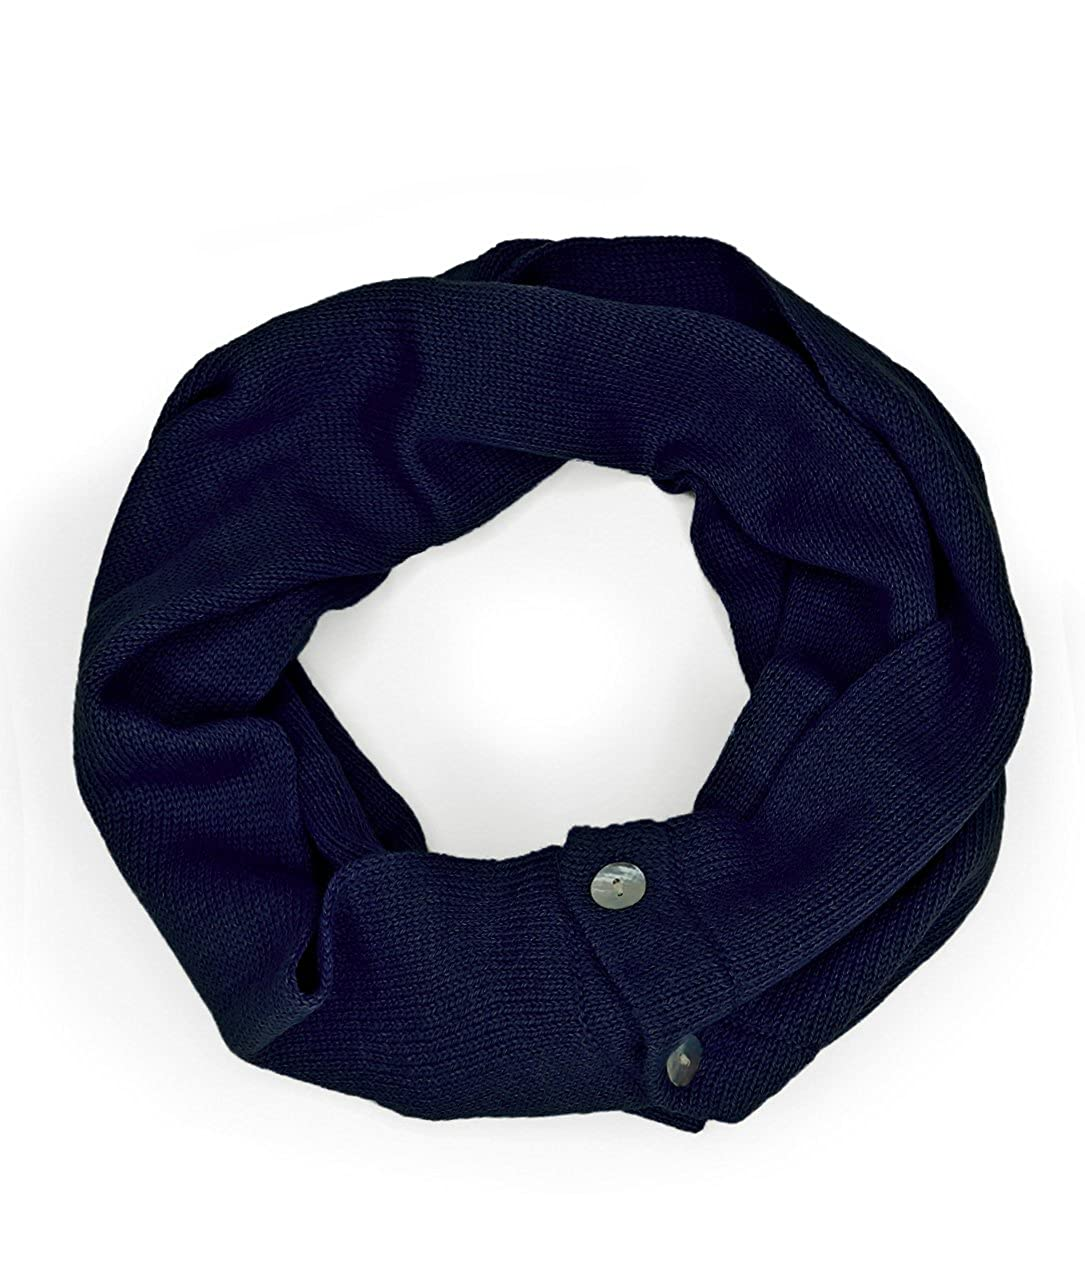 Unisex 100/% Baby Alpaca Wool 2-in-1 Convertible Infinity Circle Scarf